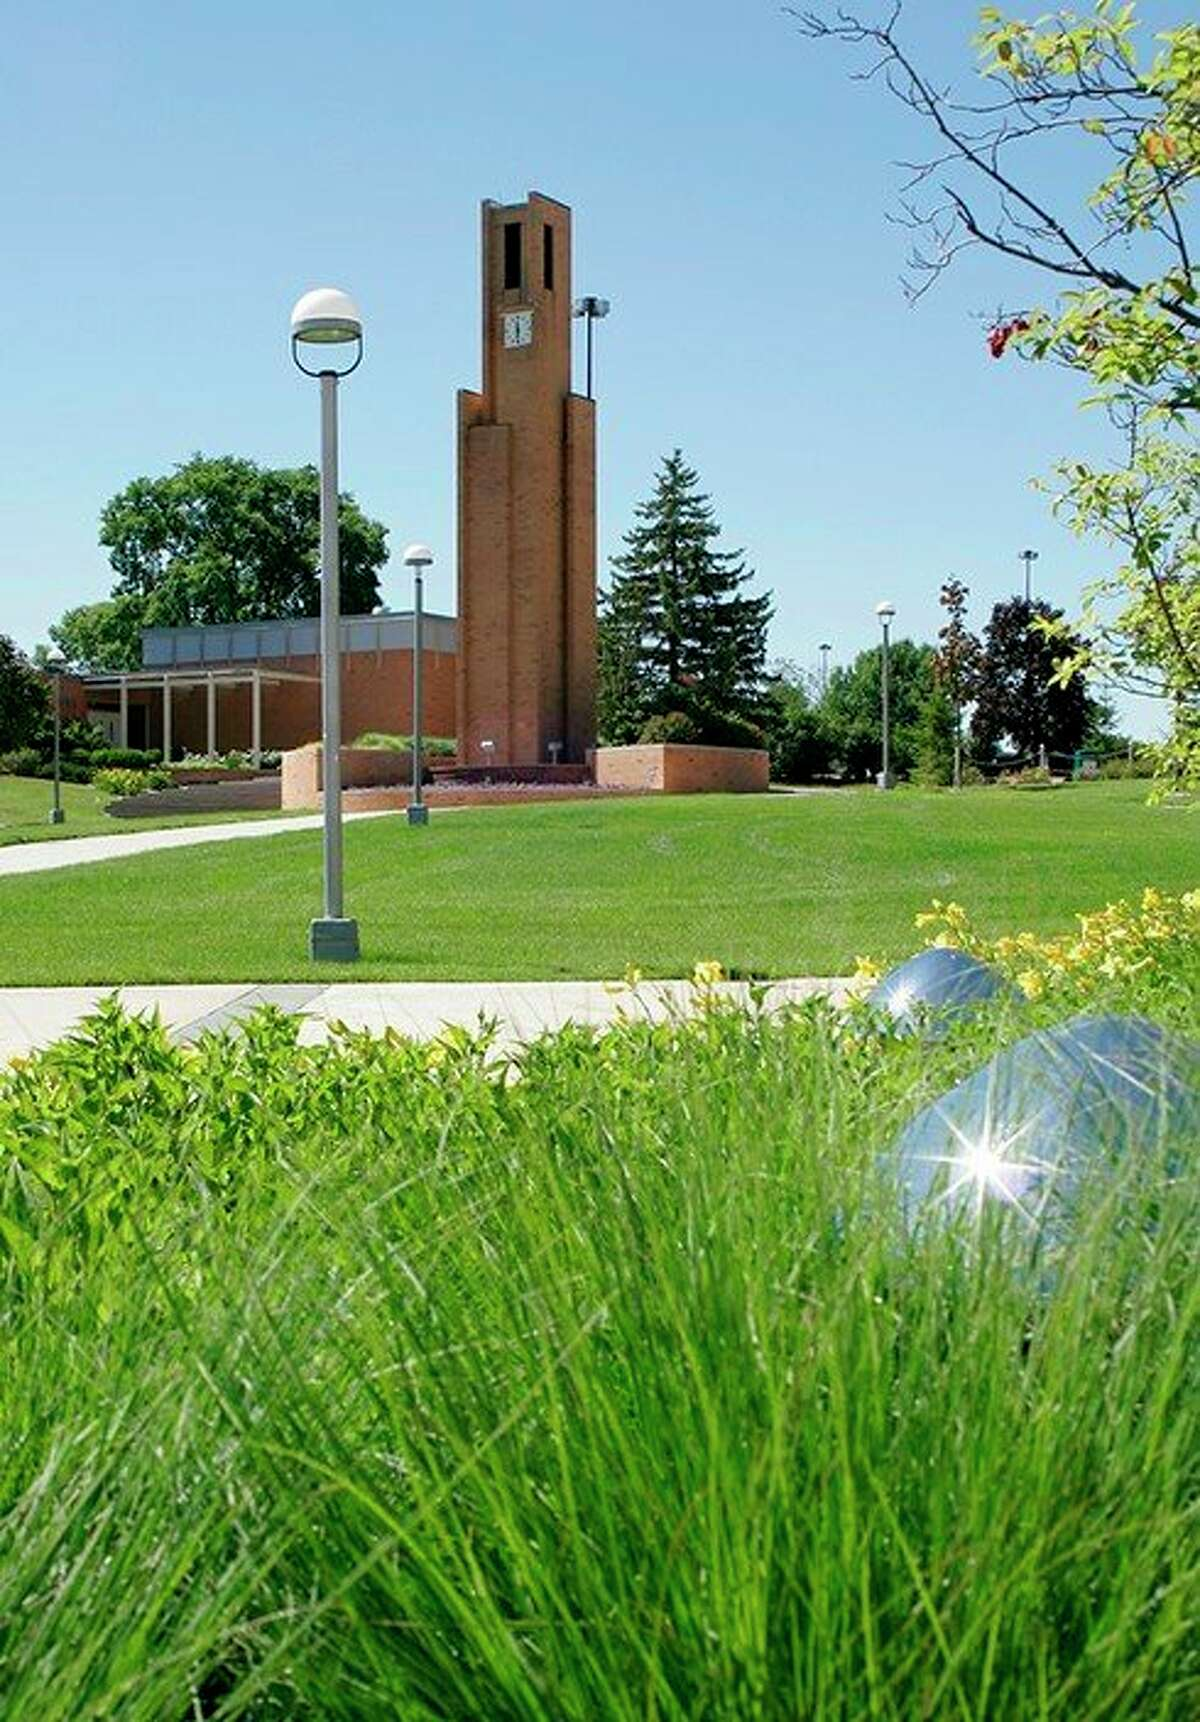 """SmartAsset's """"Best Value Colleges"""" ranking for 2020 includes Ferris State University among their 10 public and private universities in Michigan, based on a comparison of student living expenses, starting salary, tuition and other factors. (Courtesy photo)"""